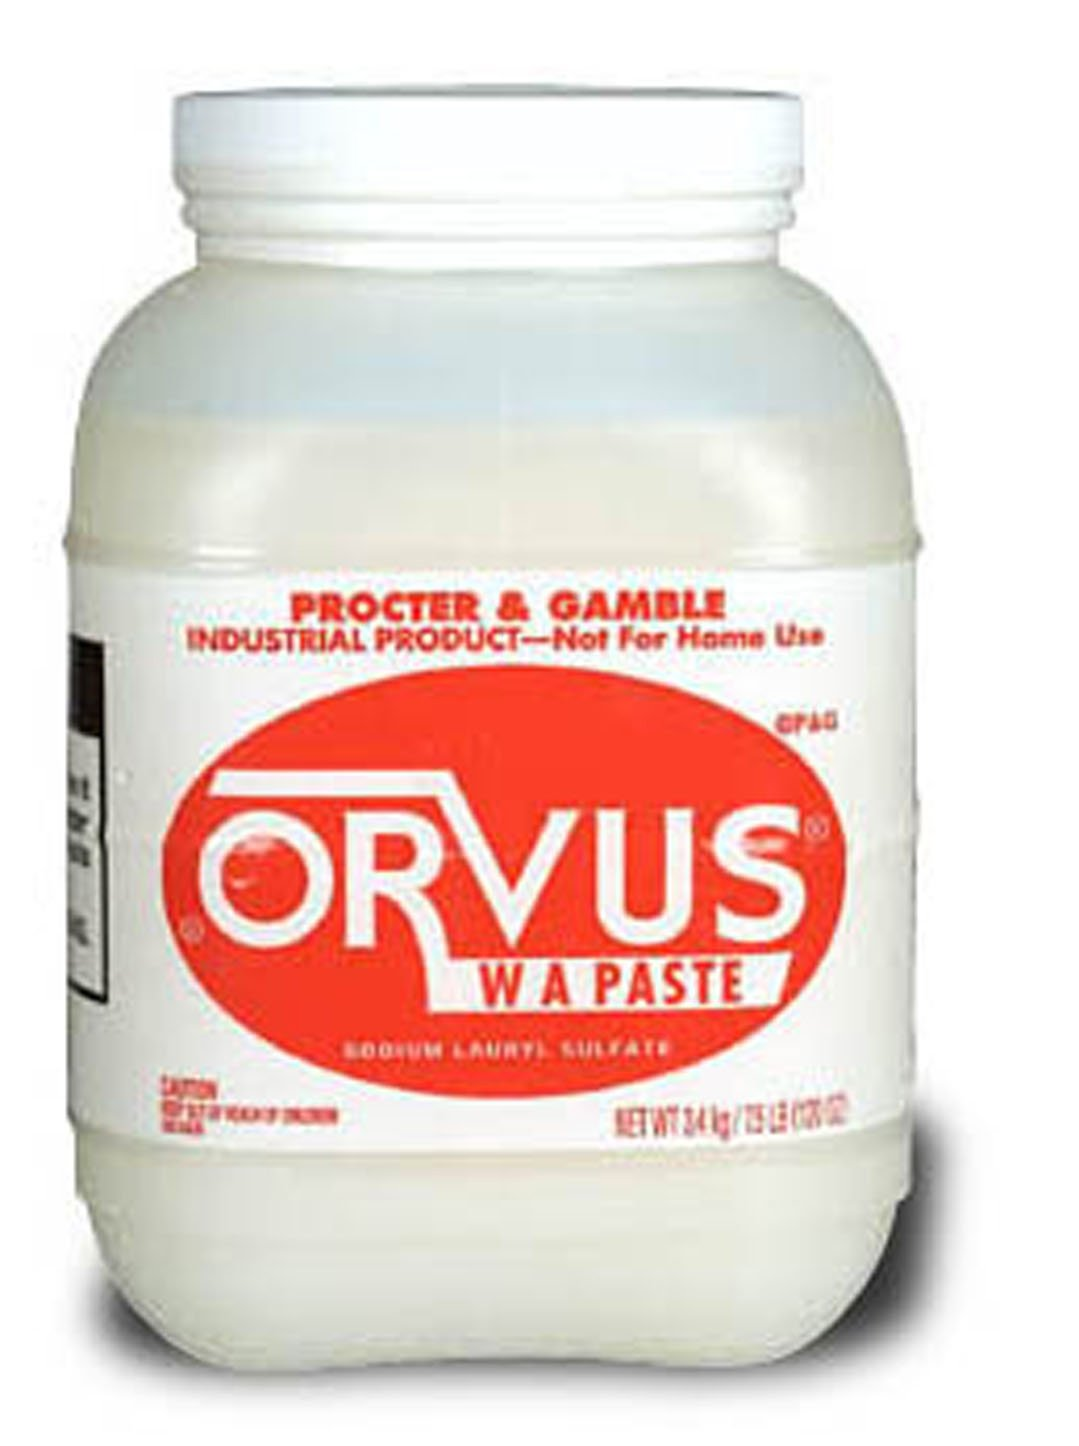 Procter & Gamble 02531 Orvus W A Paste- 7.5 lb. Bottle- 4/Carton B004M5MGNI